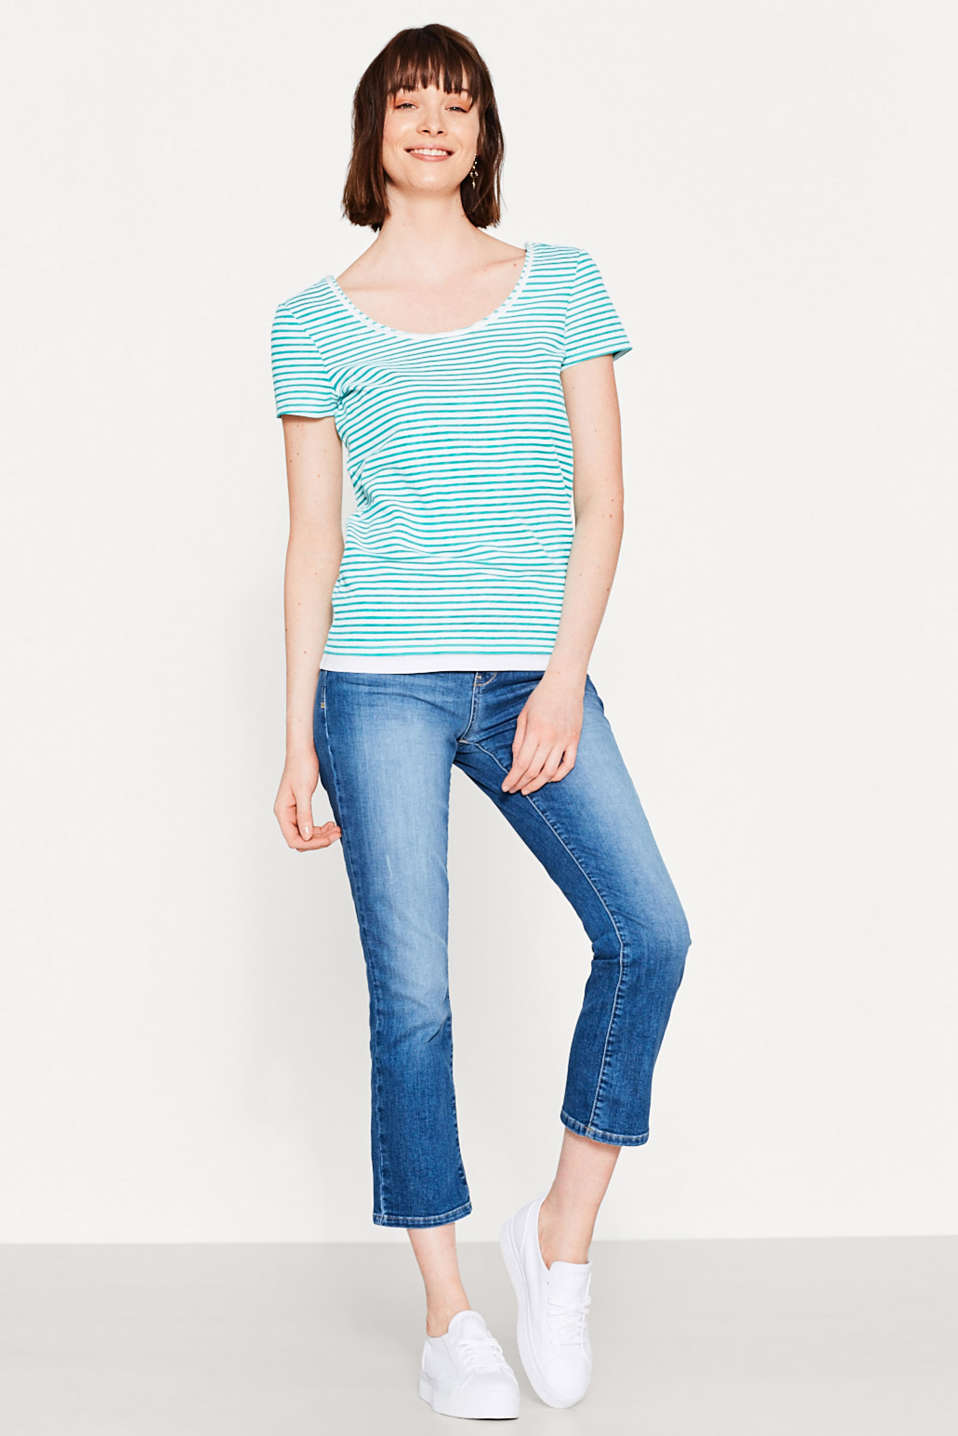 Esprit - Striped T-shirt with layering, 100% cotton